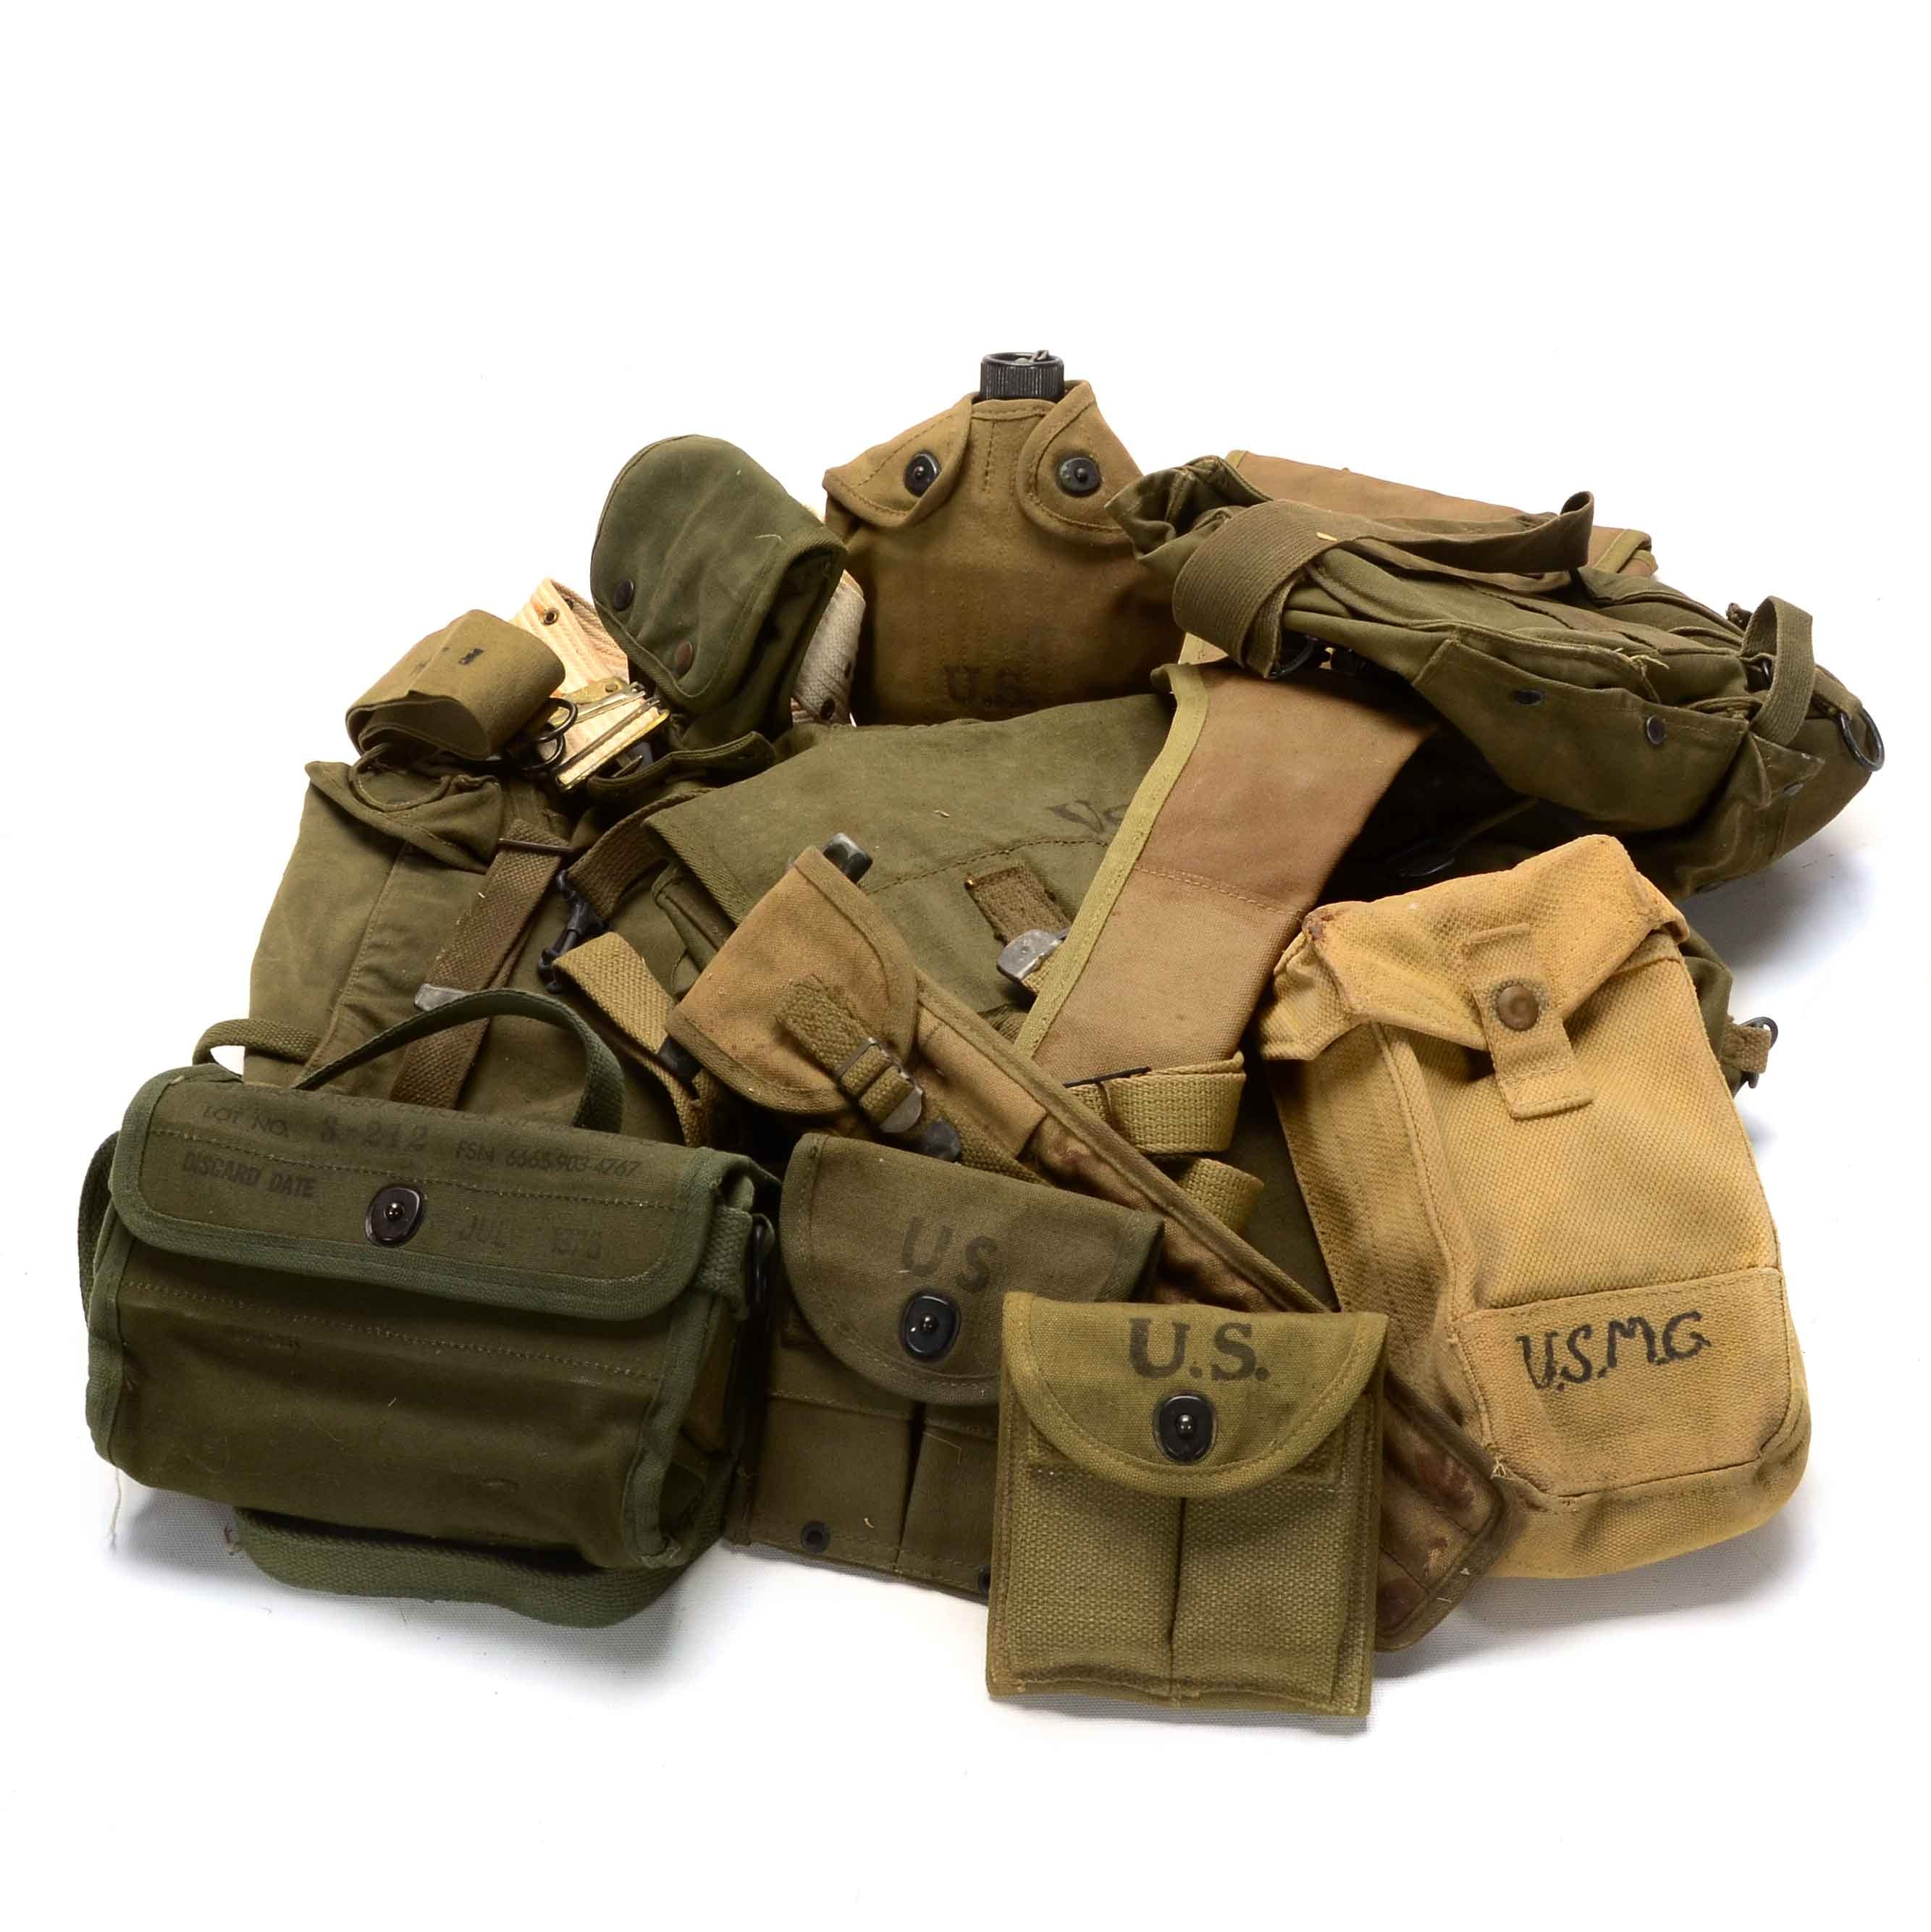 WWII-Era US Military Gear and Pouches